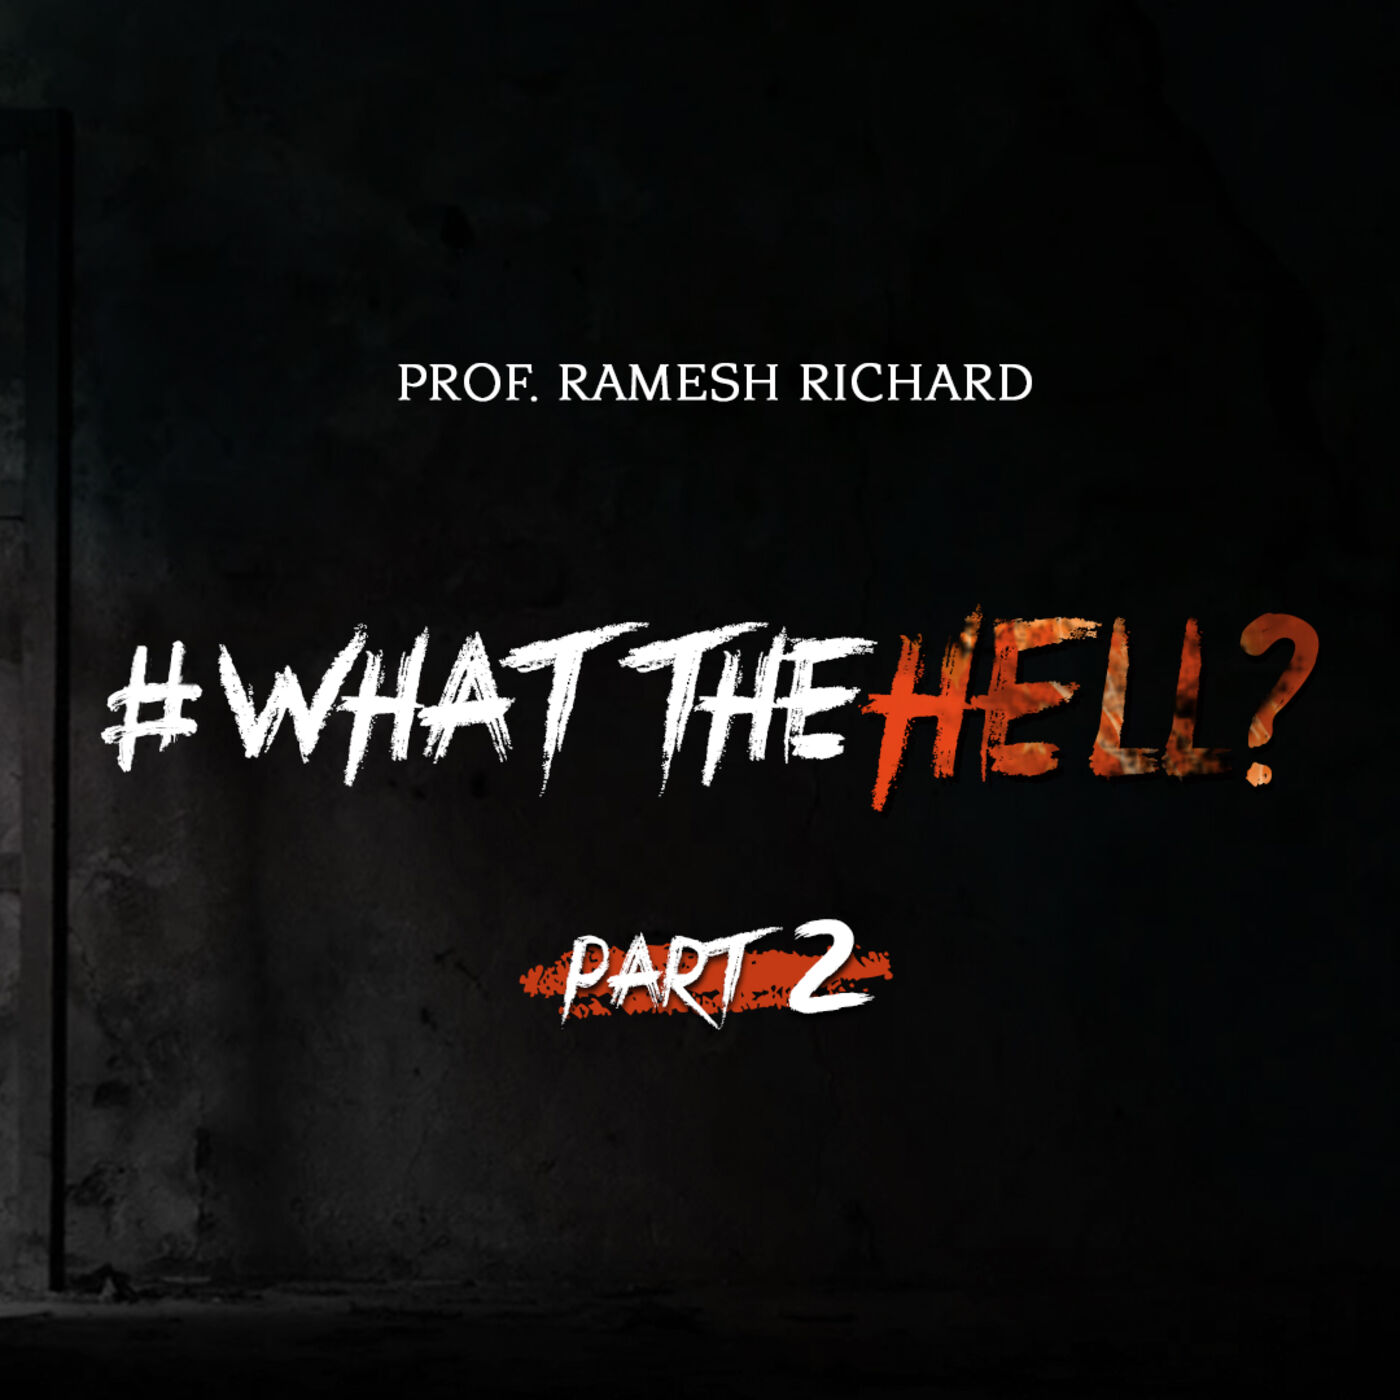 Hell: A plausible reality? 2/5